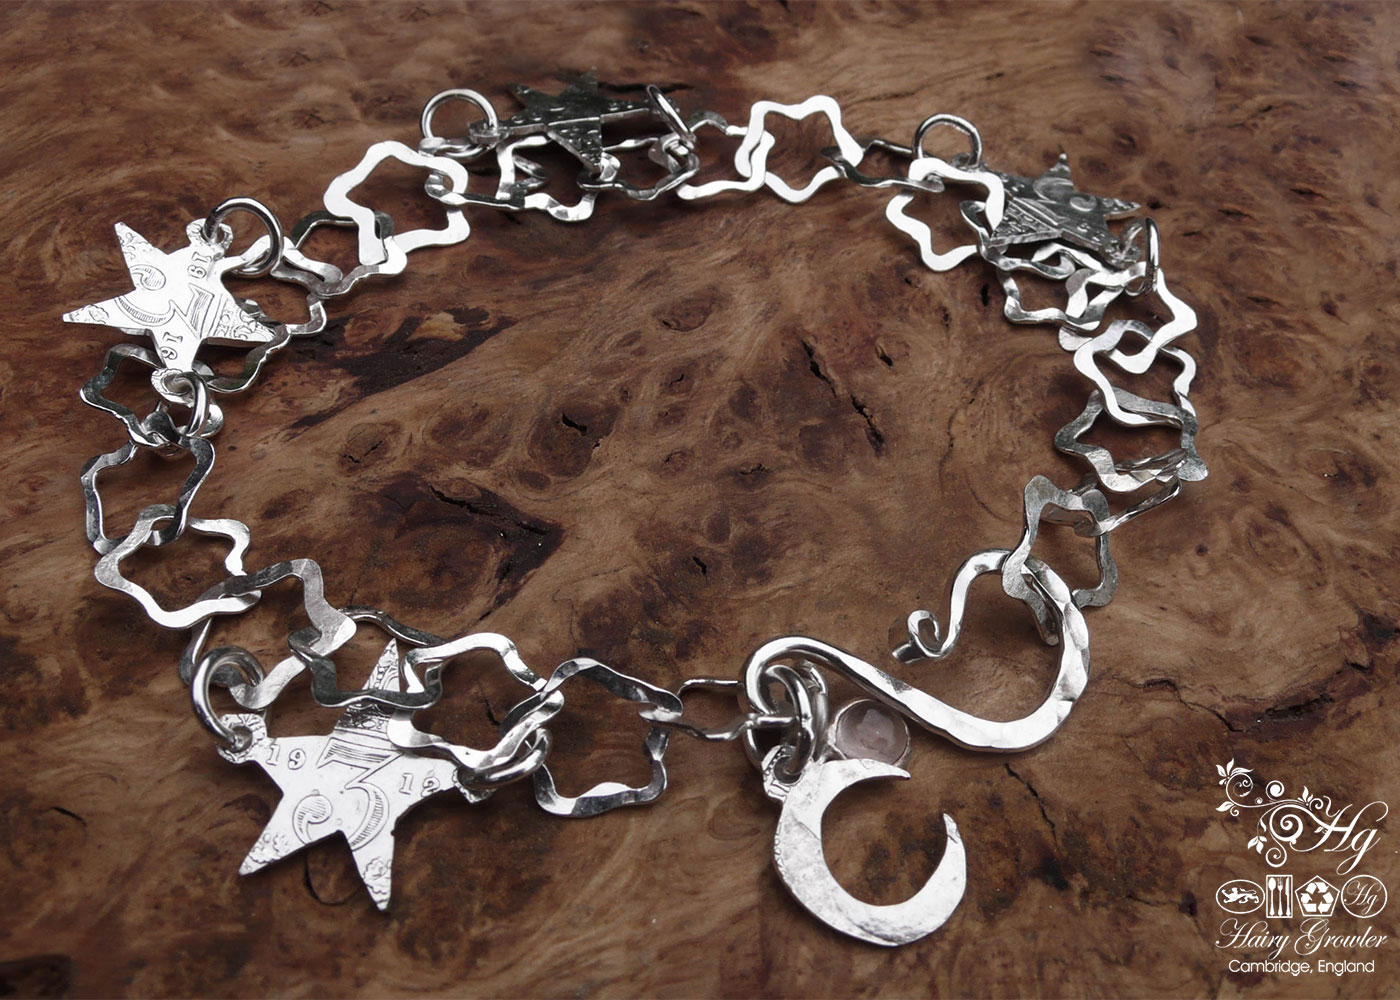 star bracelet individually handcrafted and recycled from an old Victorian silver coins